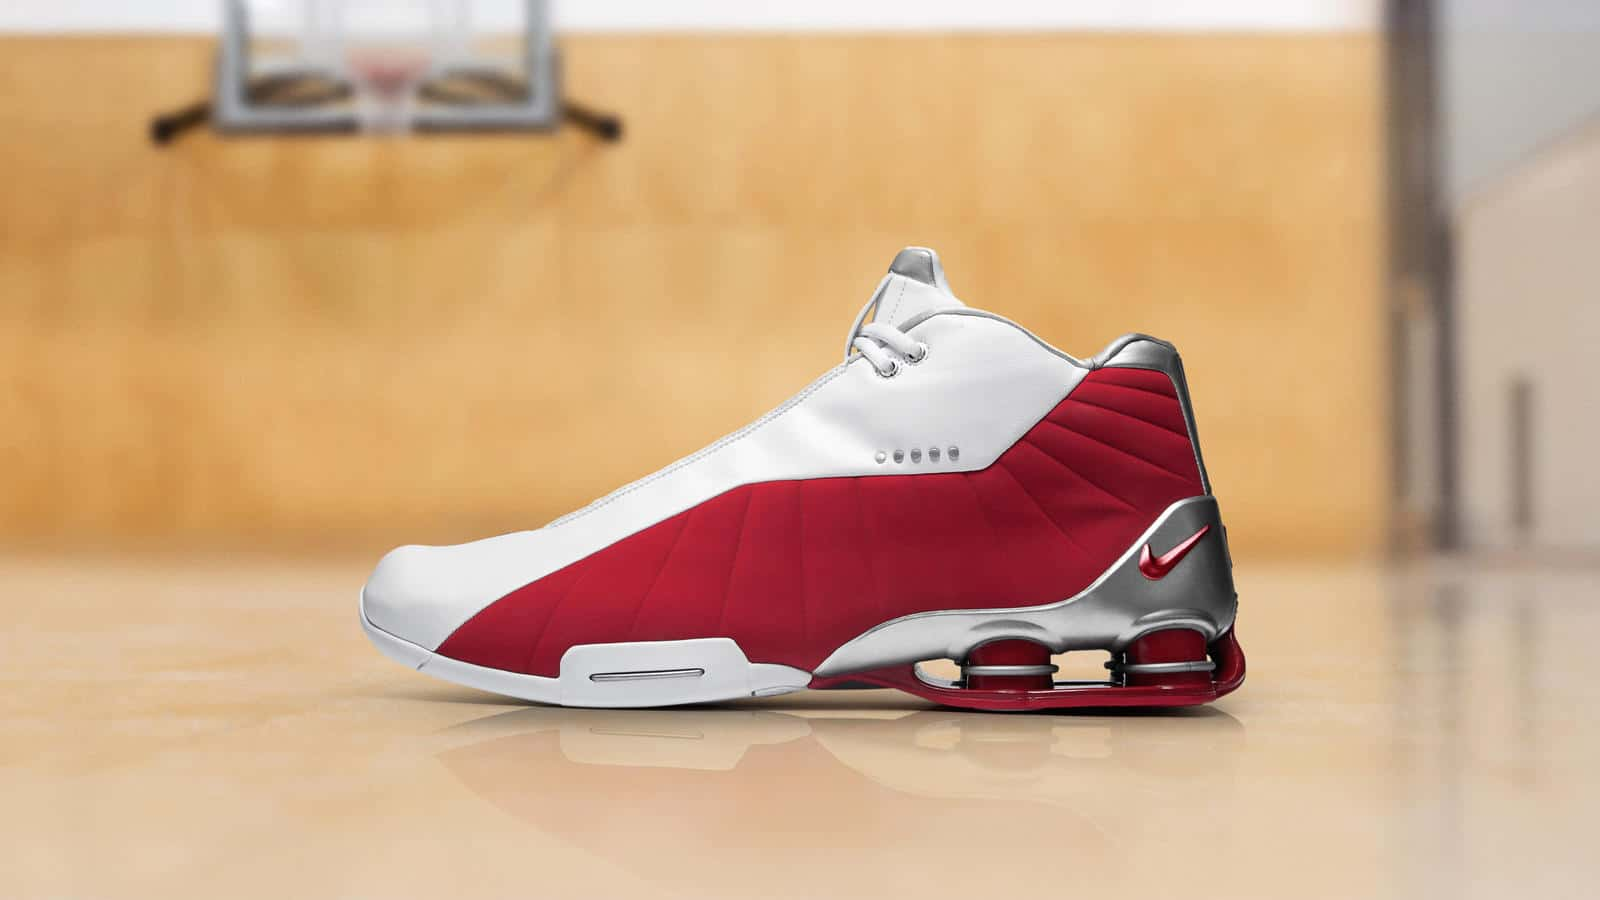 The Nike SHOX BB4 White/Metallic Silver/Varsity Red Has a Release Date